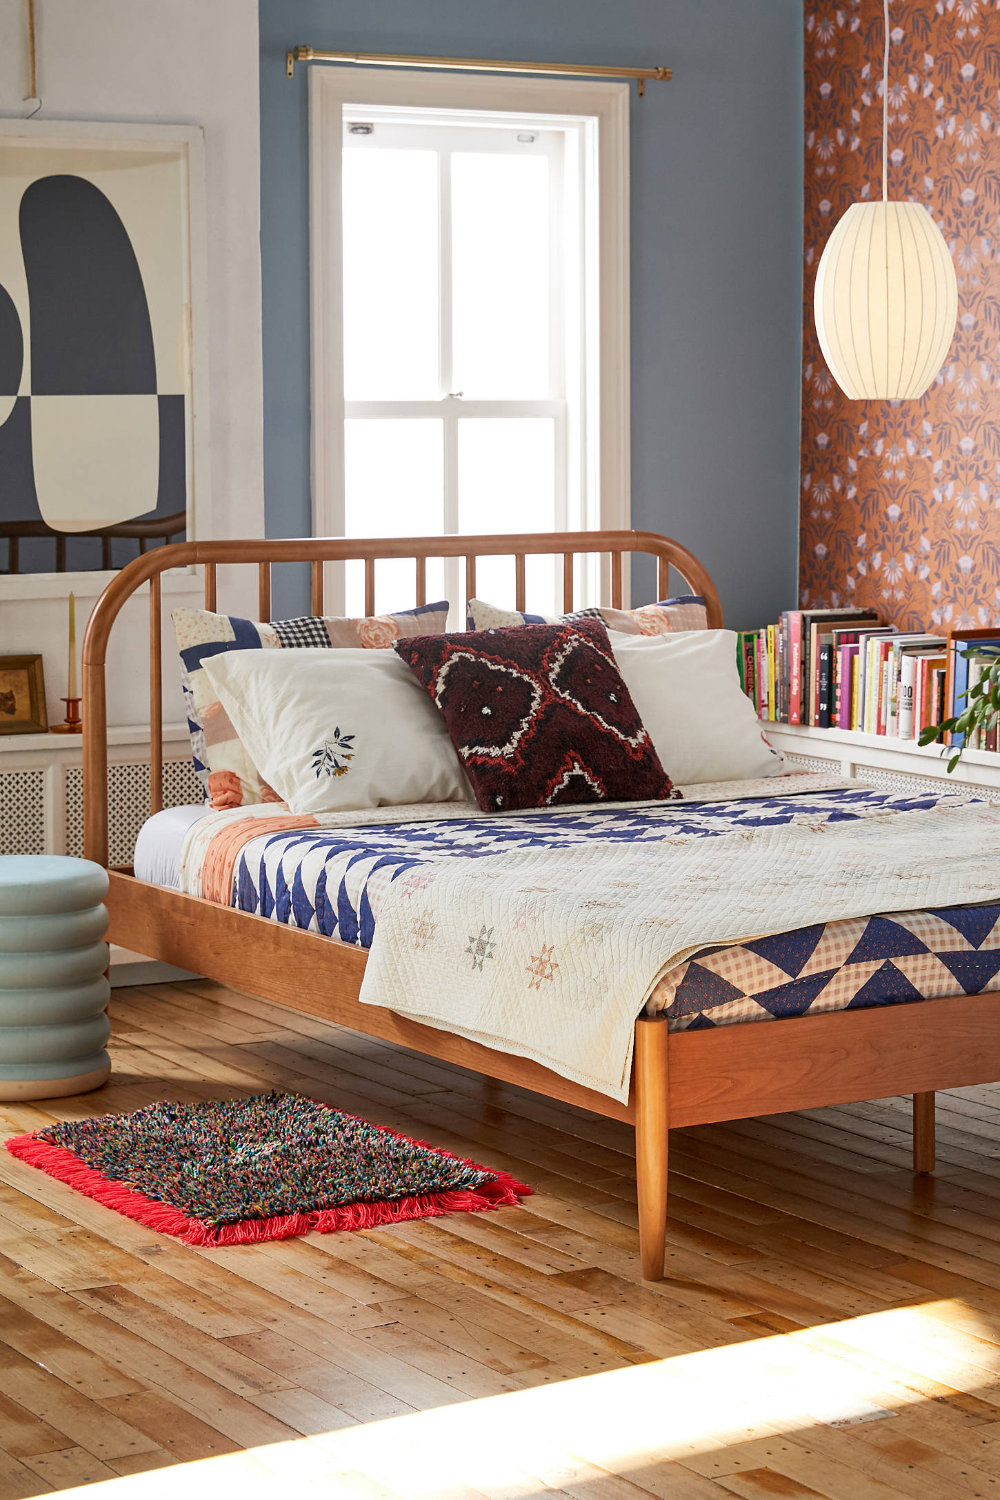 Evie Bed in 2020 Home, Furniture, Wood bed frame